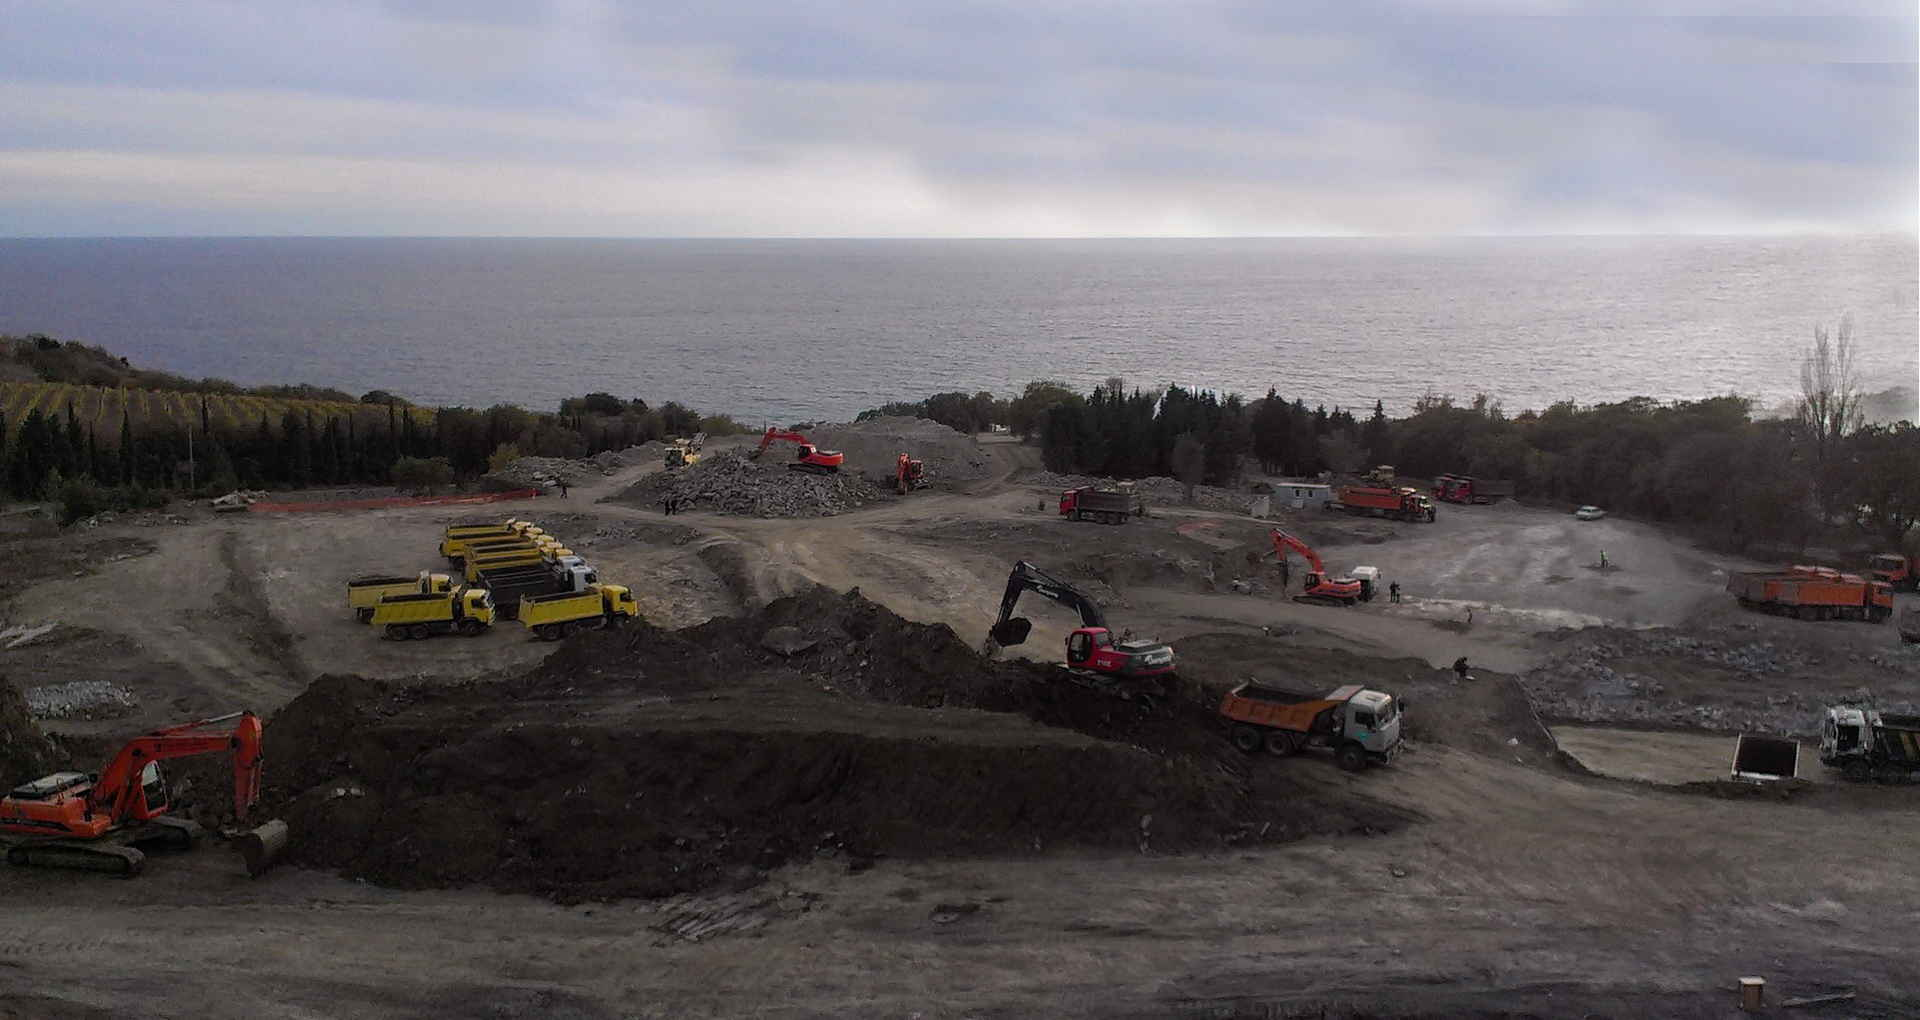 The special technics of 'Avtogran' working on the construction of the 5 Star hotel in Crimea - digging pits, earthwork, removal of soil